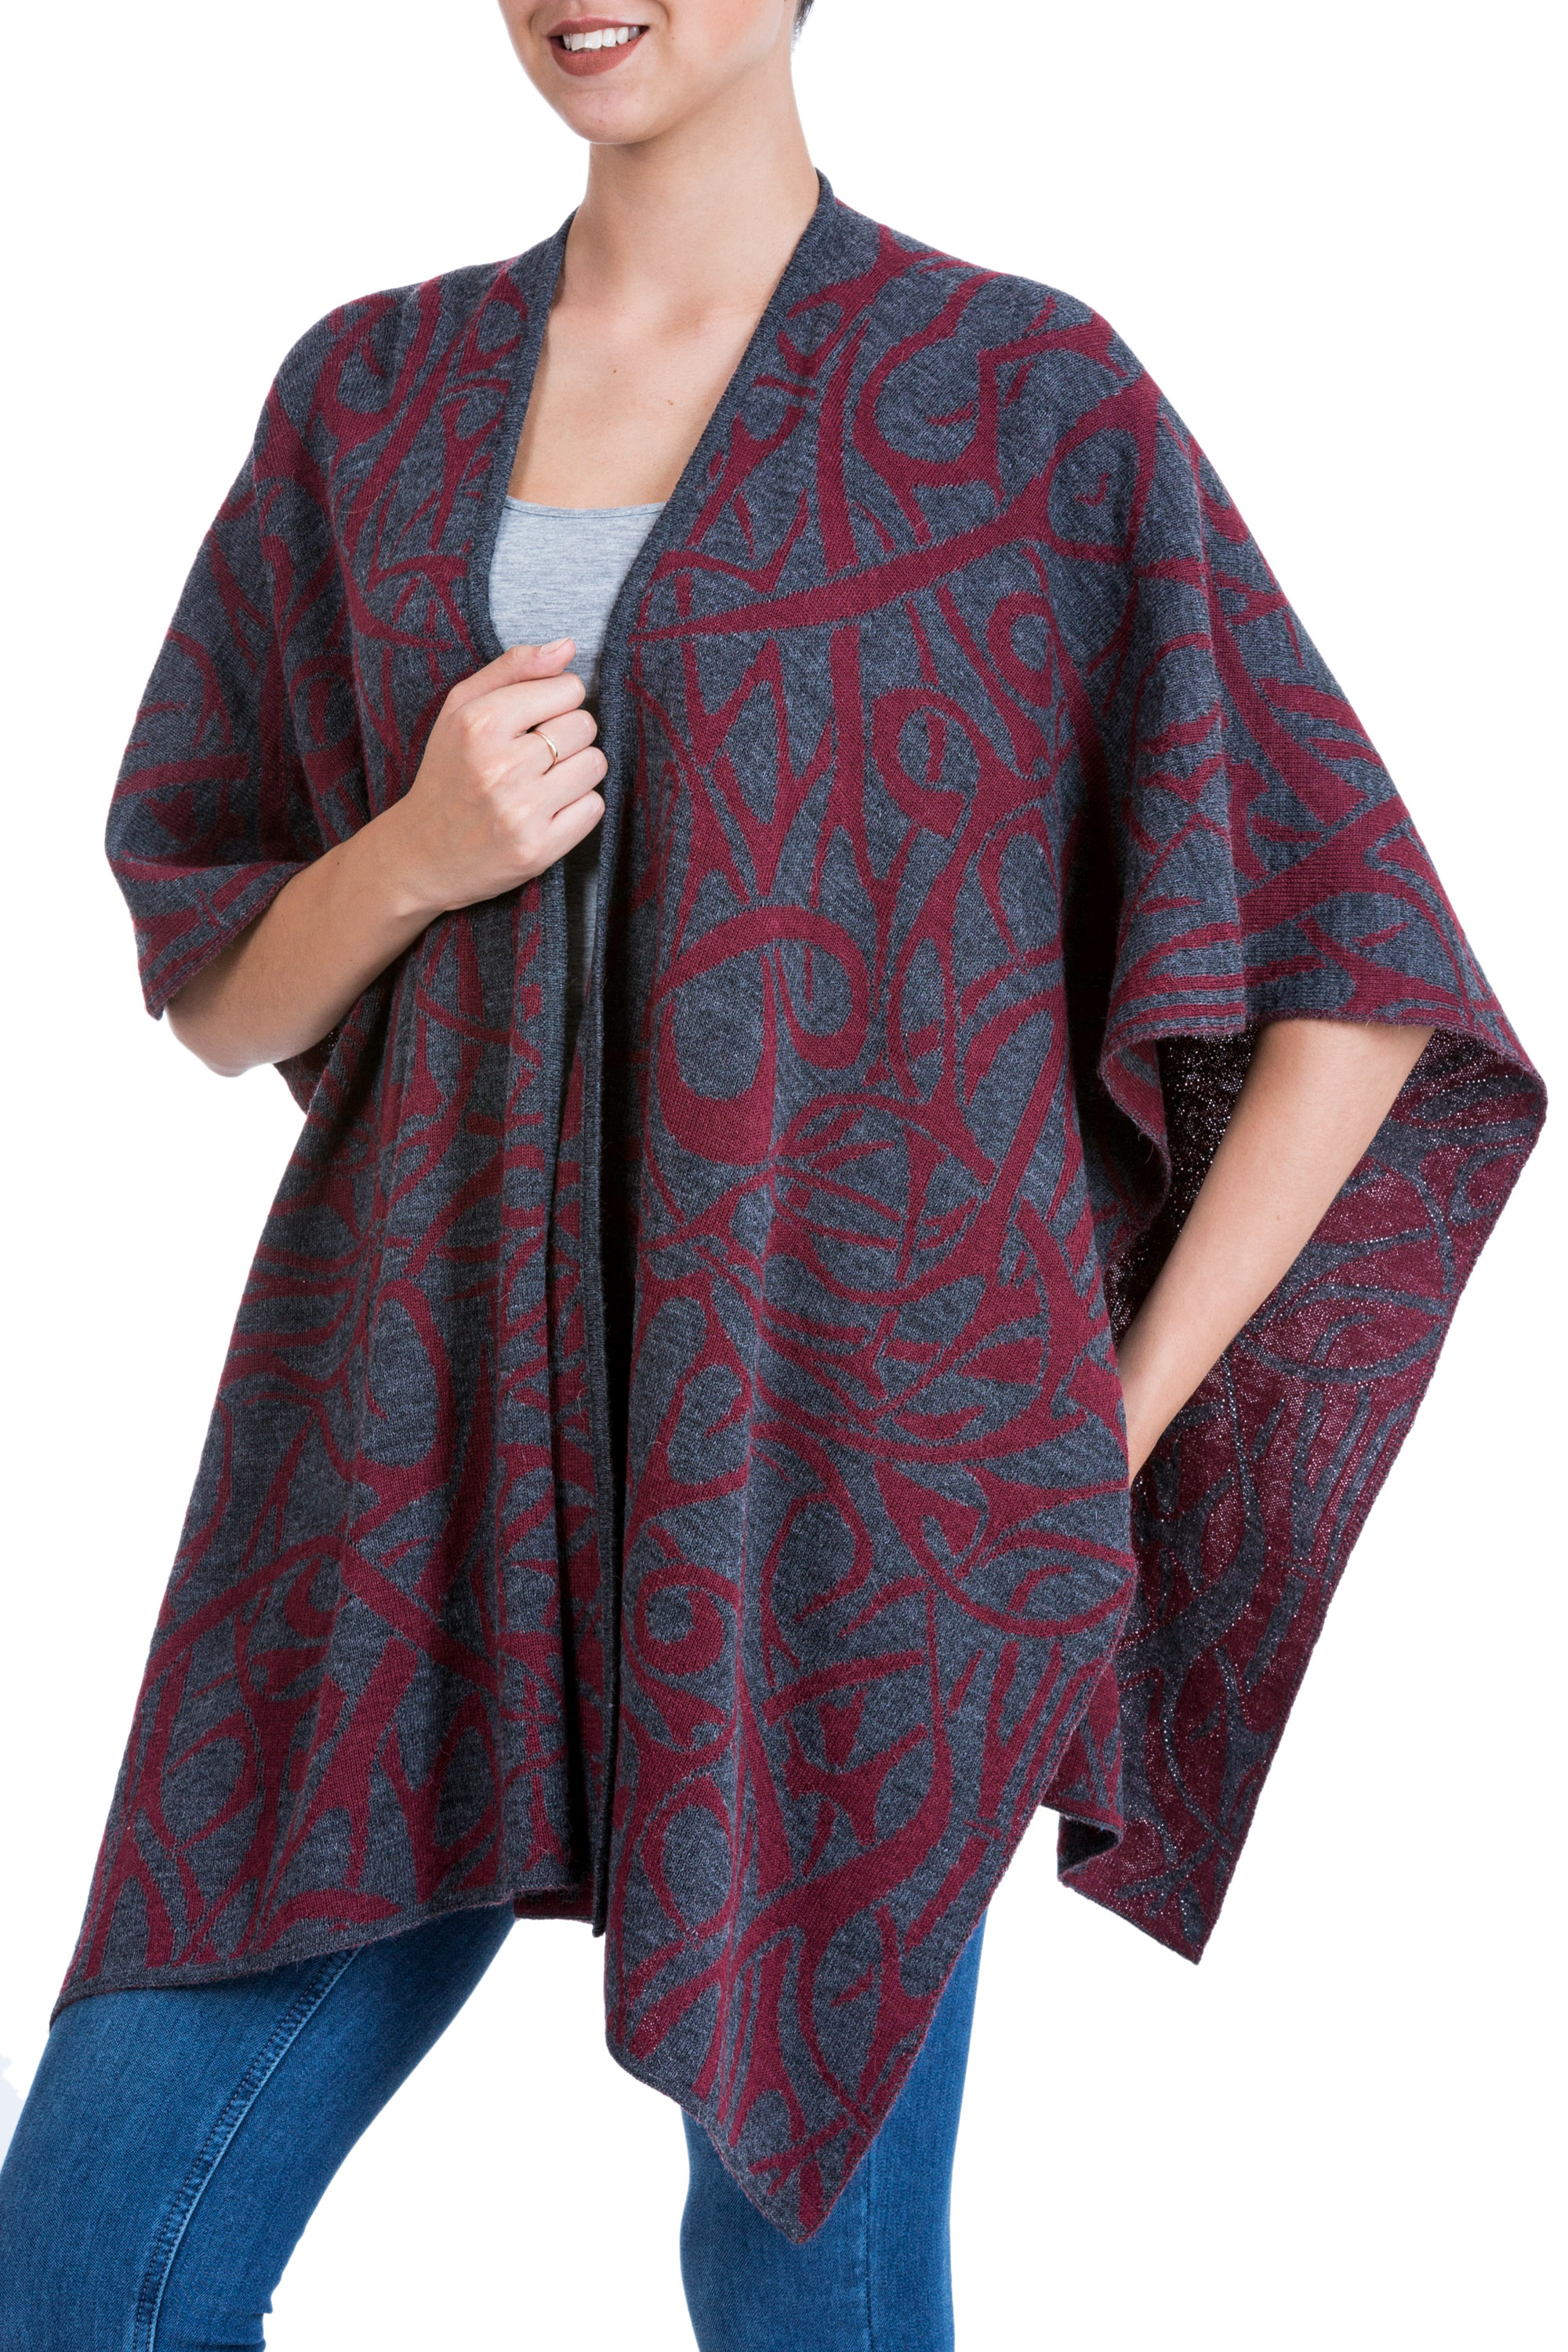 fall apparel, wraps, ruanas wraps and ruanas Fair Trade Alpaca Blend Andean Reversible Ruana Cape with Ab, 'Arabesque Abstractions'